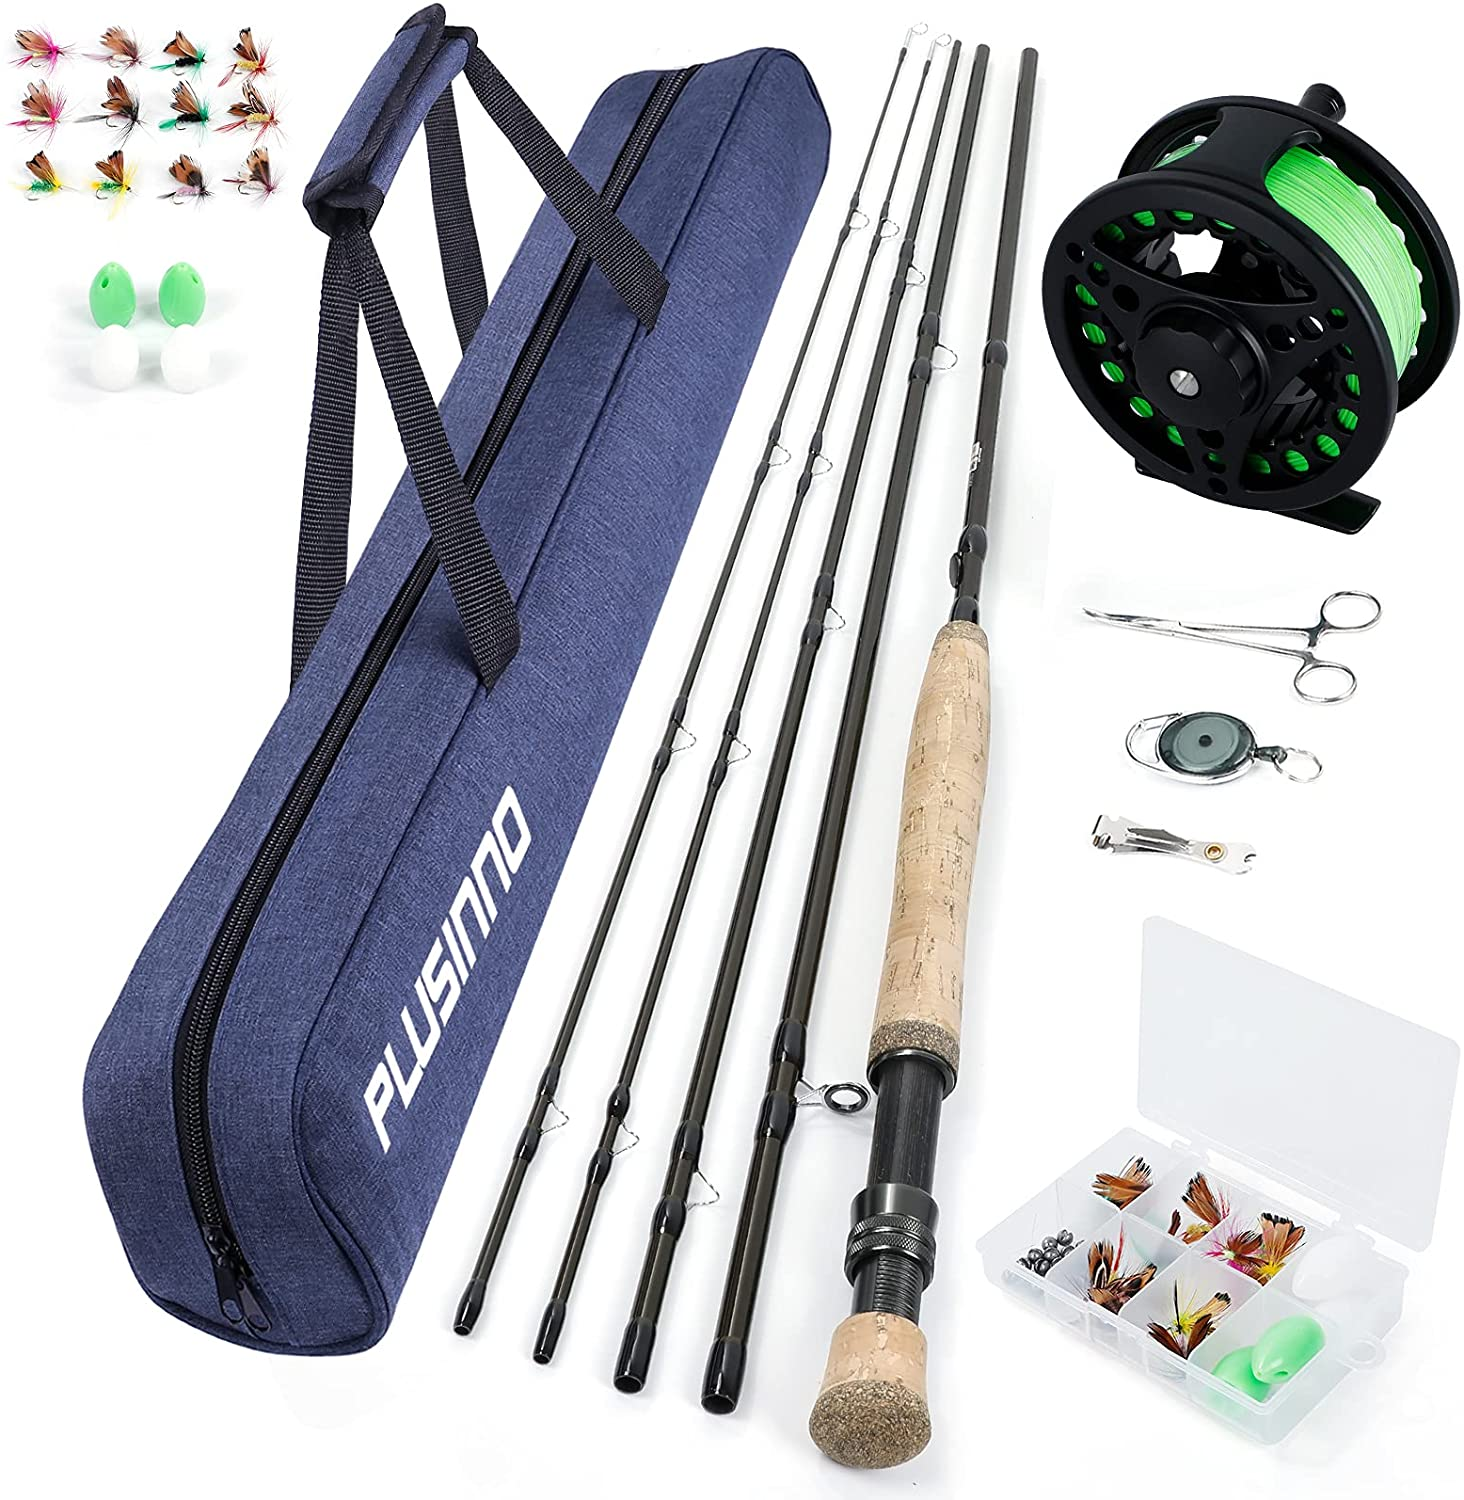 PLUSINNO Fly Fishing Rod and Reel Combos